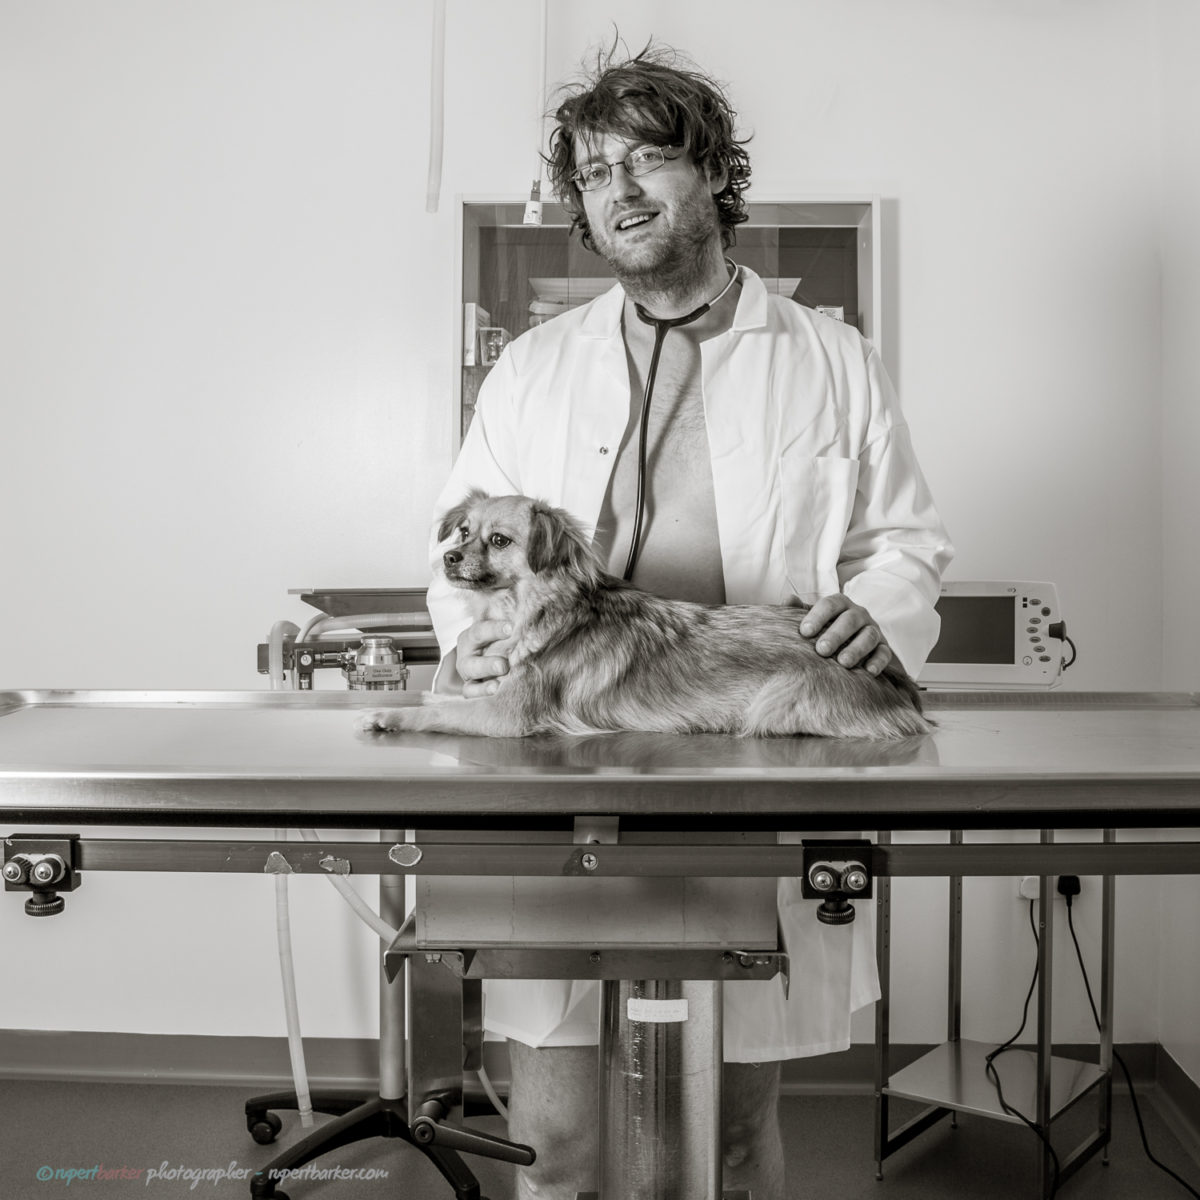 Vet naked portrait with rescue dog